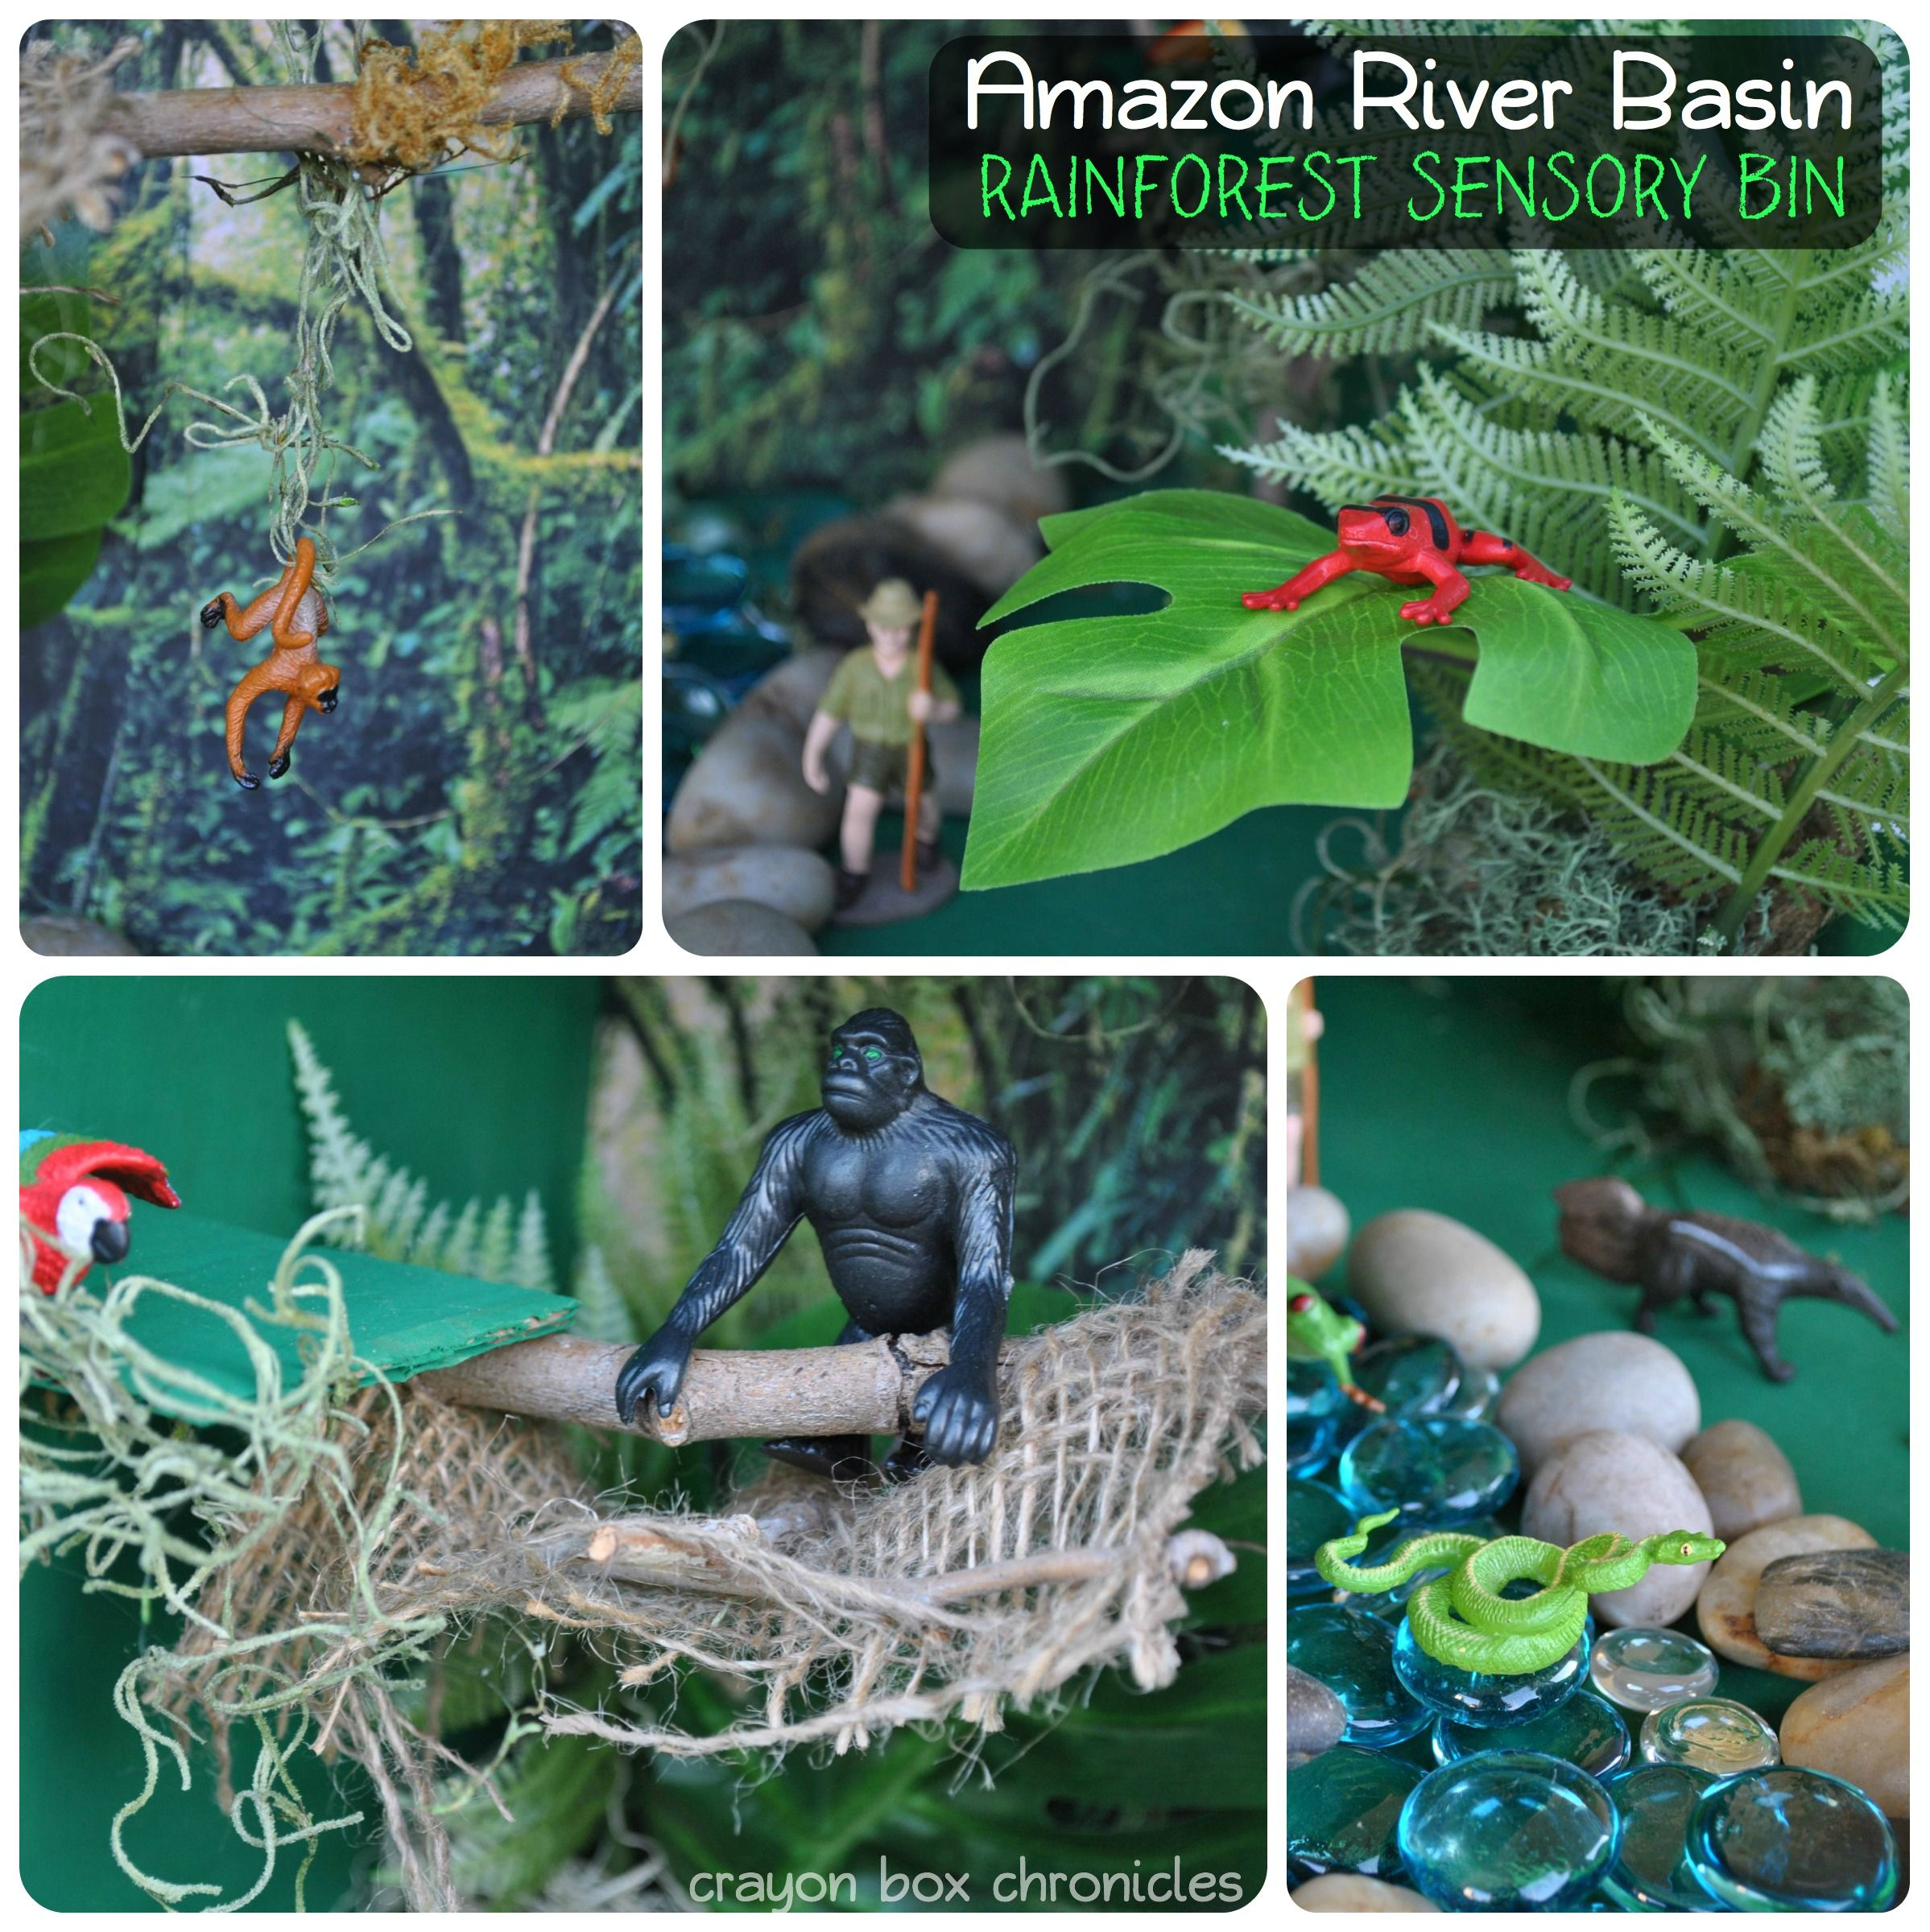 Rainforest Small World Amazon River Basin